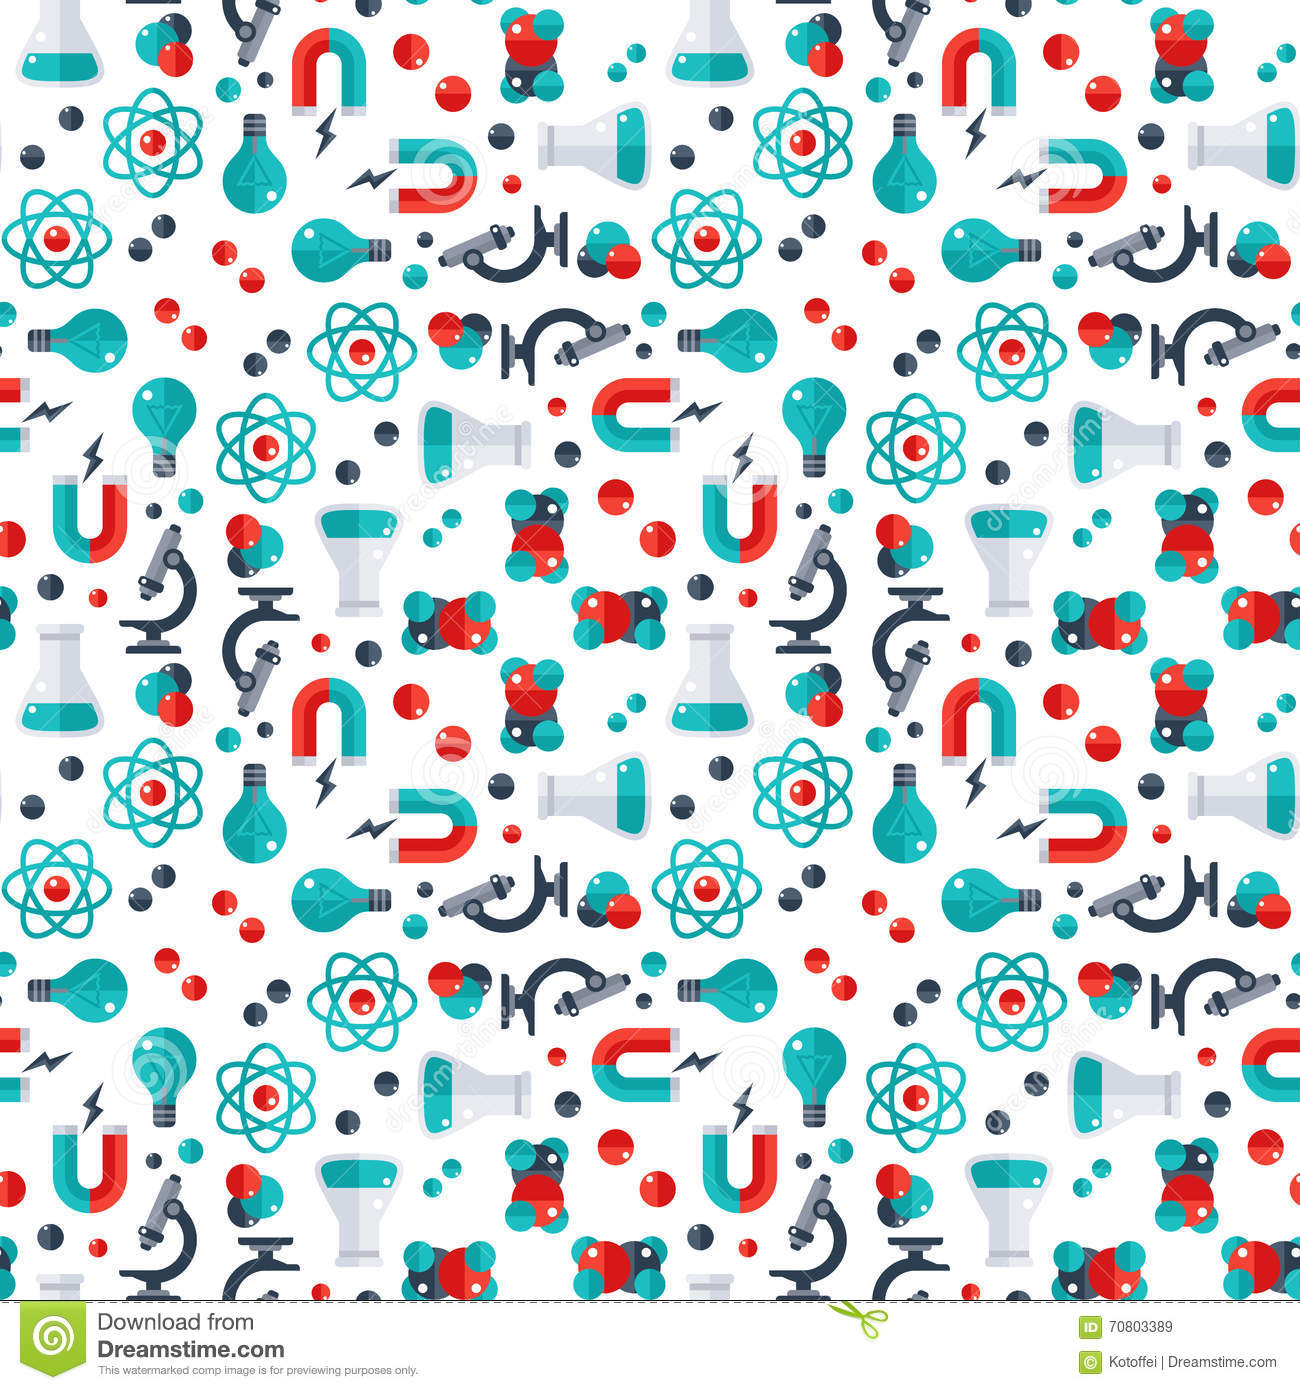 Science Laboratory Background Design: Science Seamless Pattern Stock Vector. Image Of Microscope